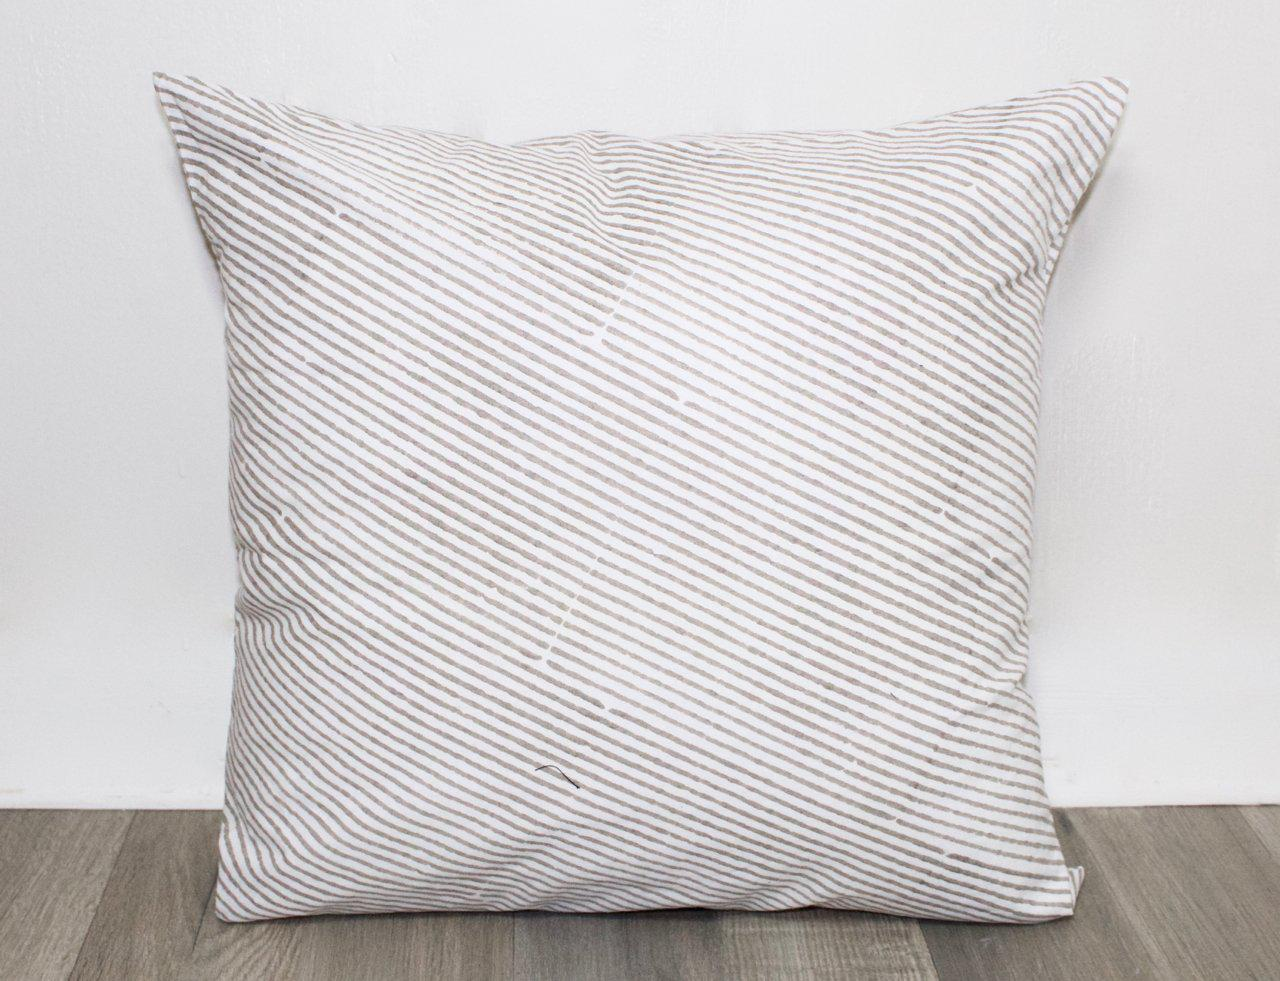 Diagonal Stripe Throw Pillow Cover